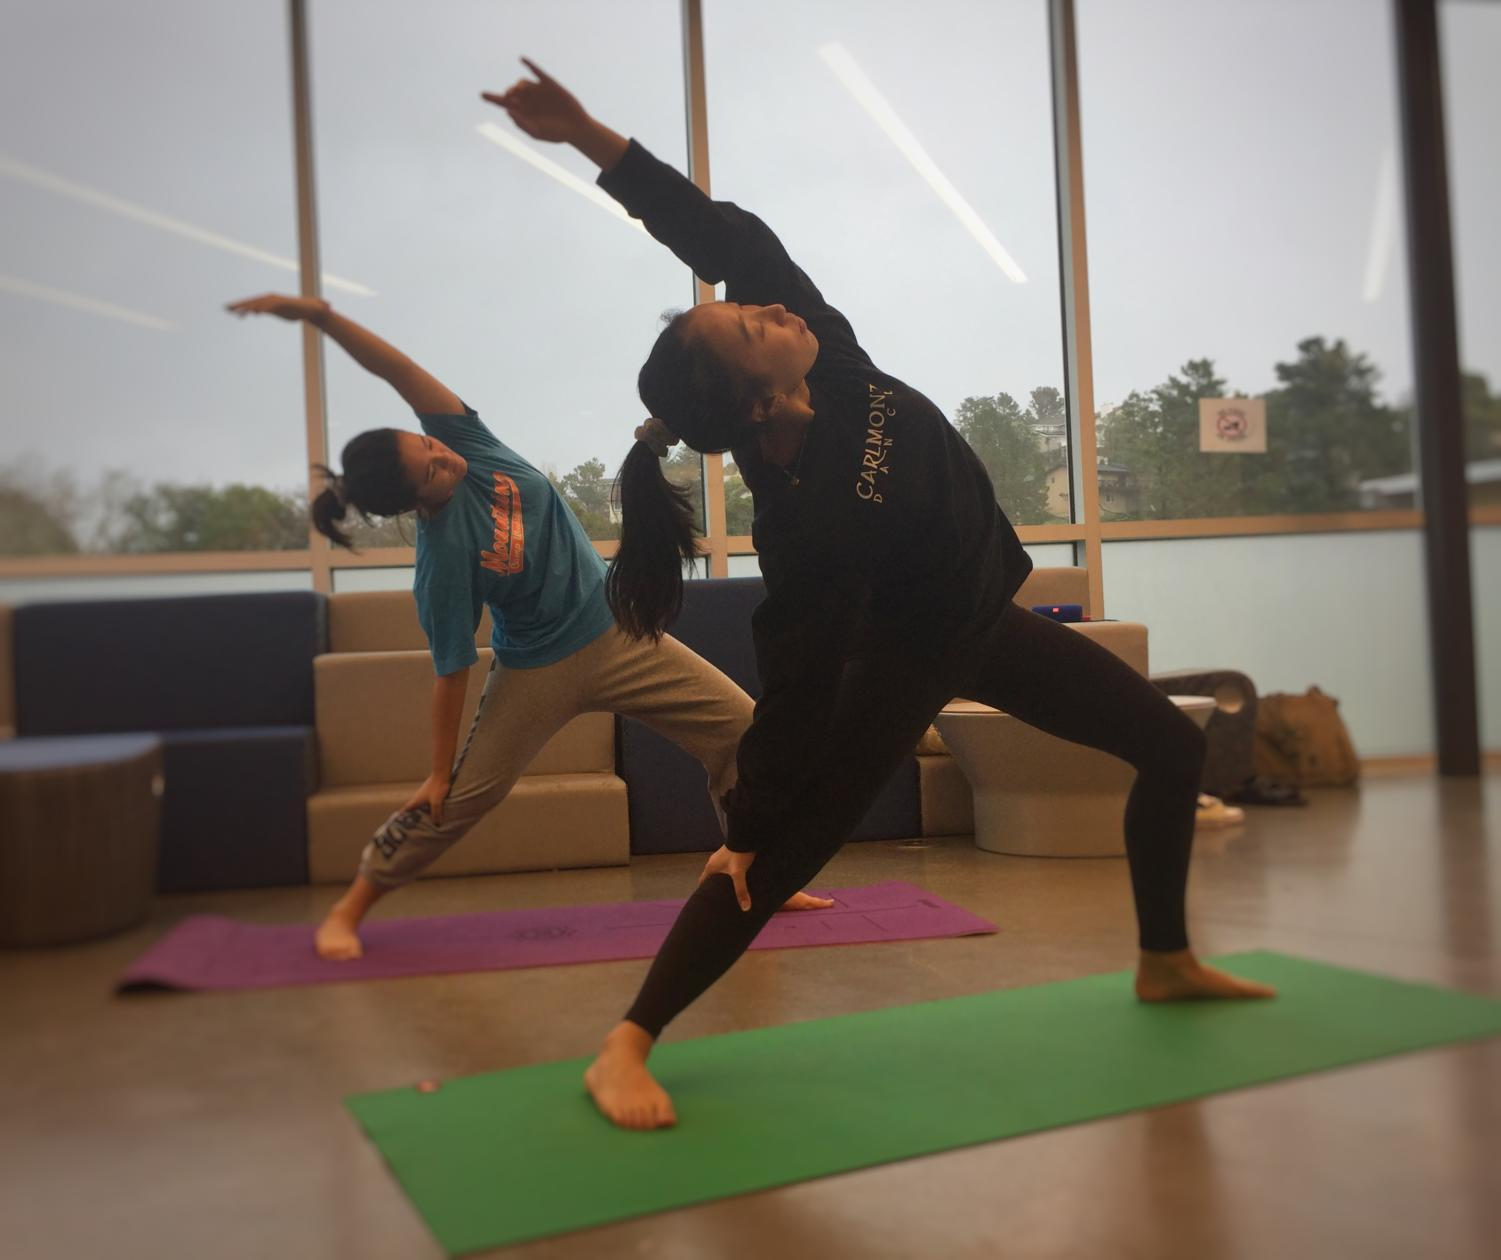 Sophomores Kenna Kwok and Sadie Somers stretch during one of Yoga Club's after-school yoga sessions.